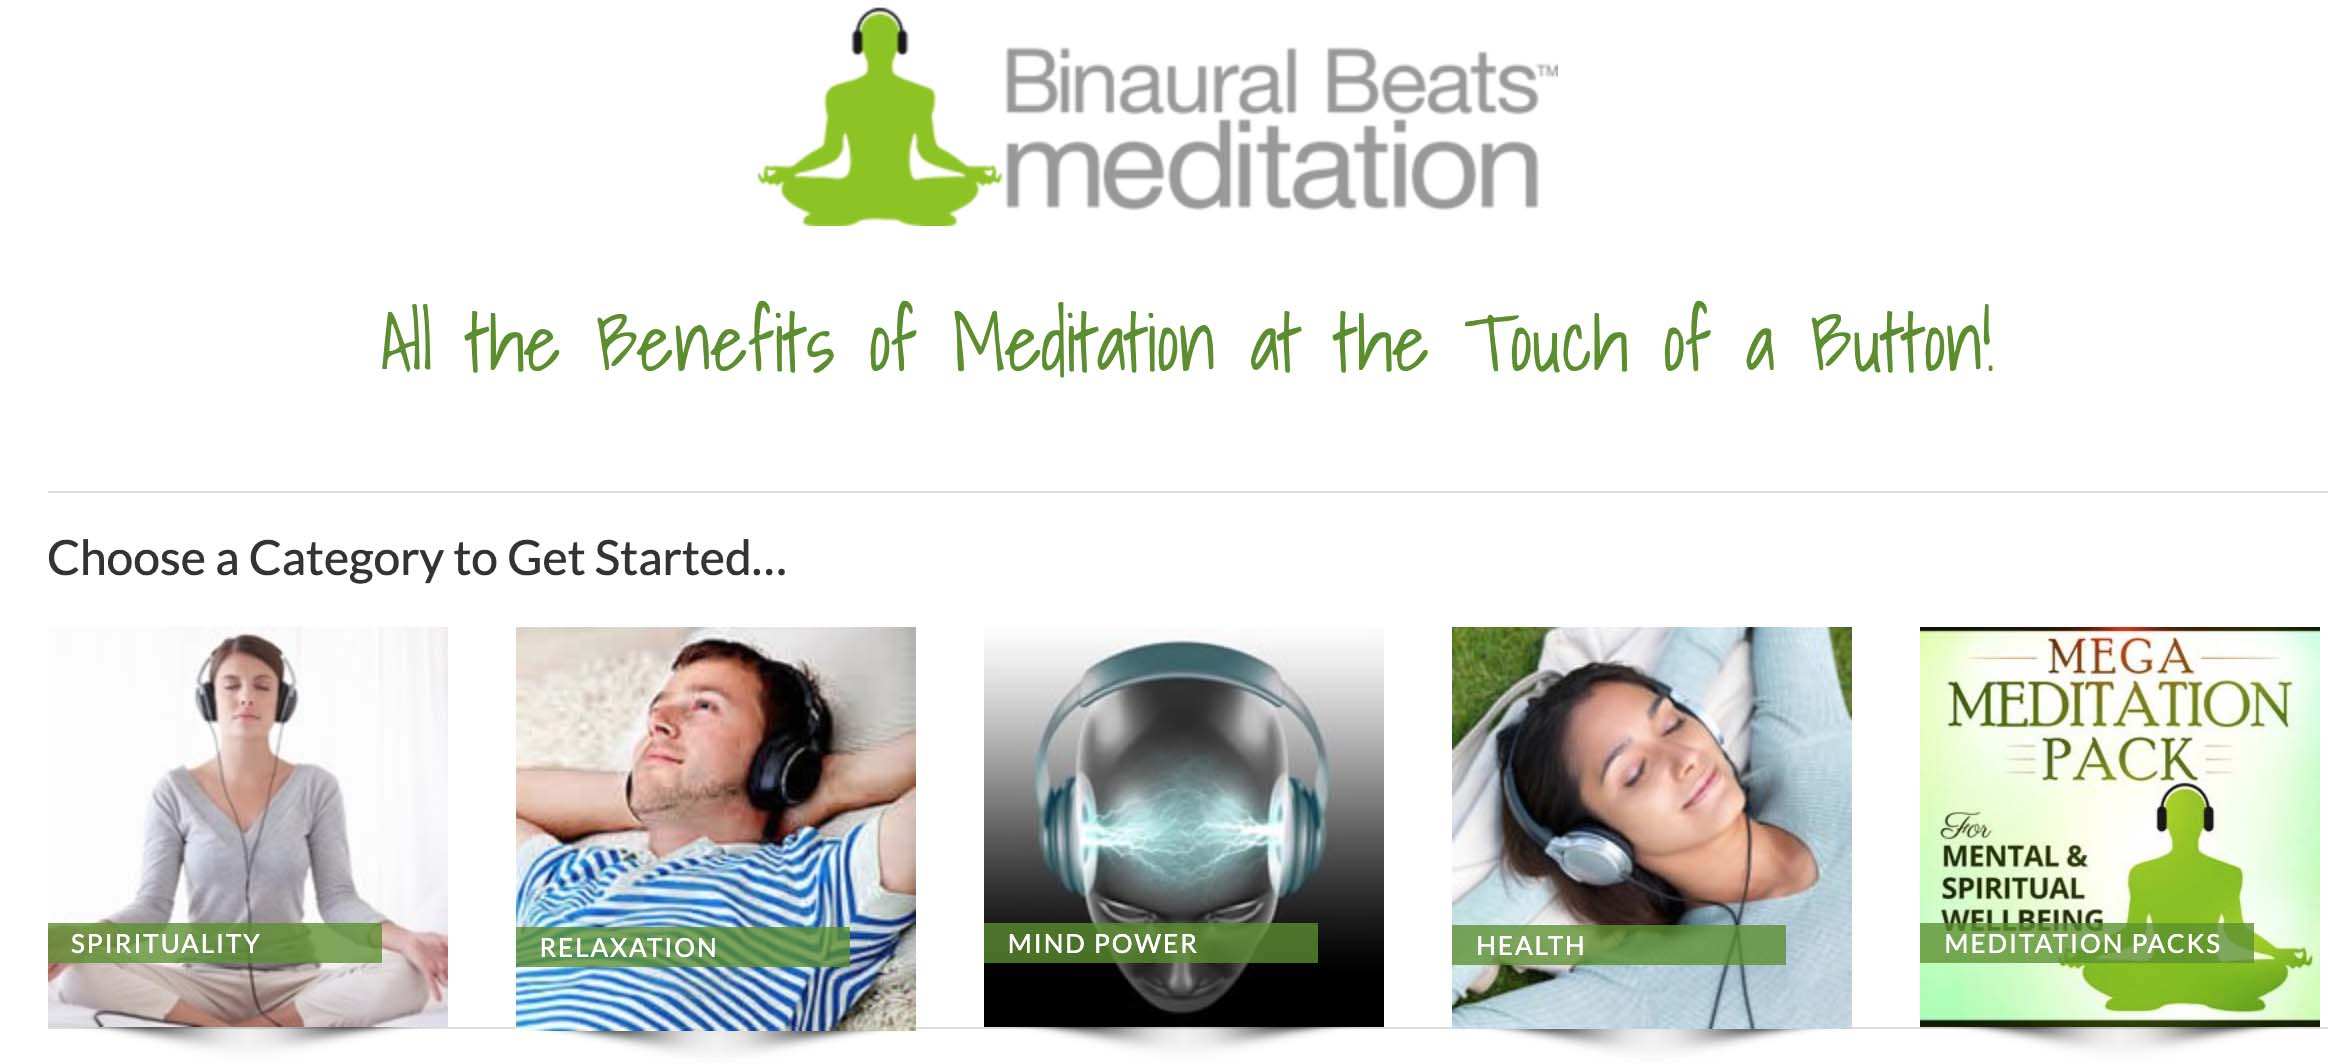 Binaural Beats Meditation Review